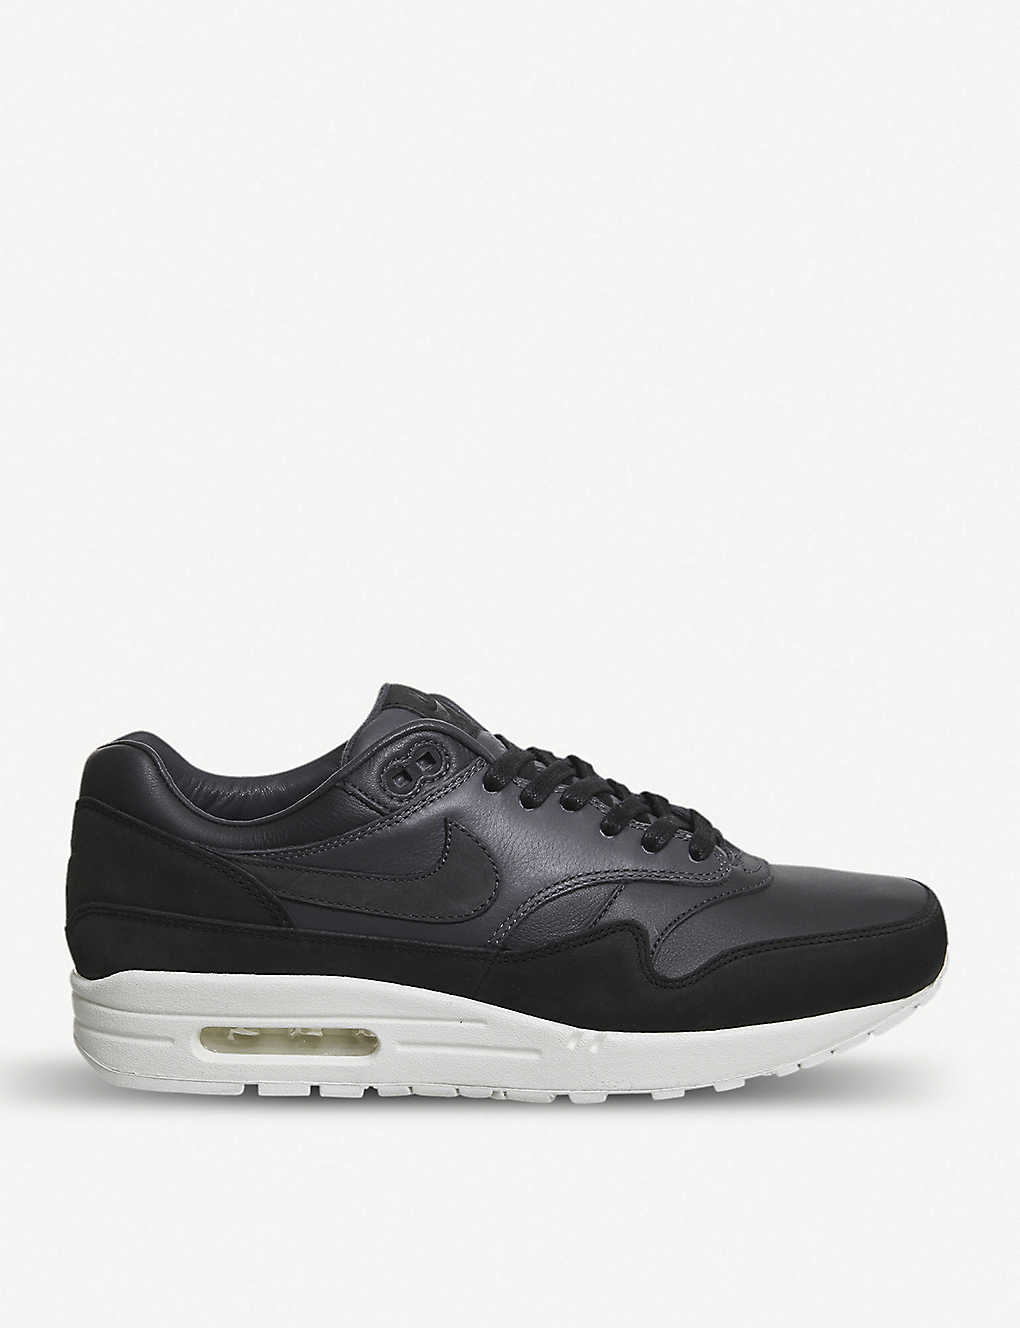 finest selection 7ea15 c634e NIKE Nike Lab Air Max 1 Pinnacle leather trainers